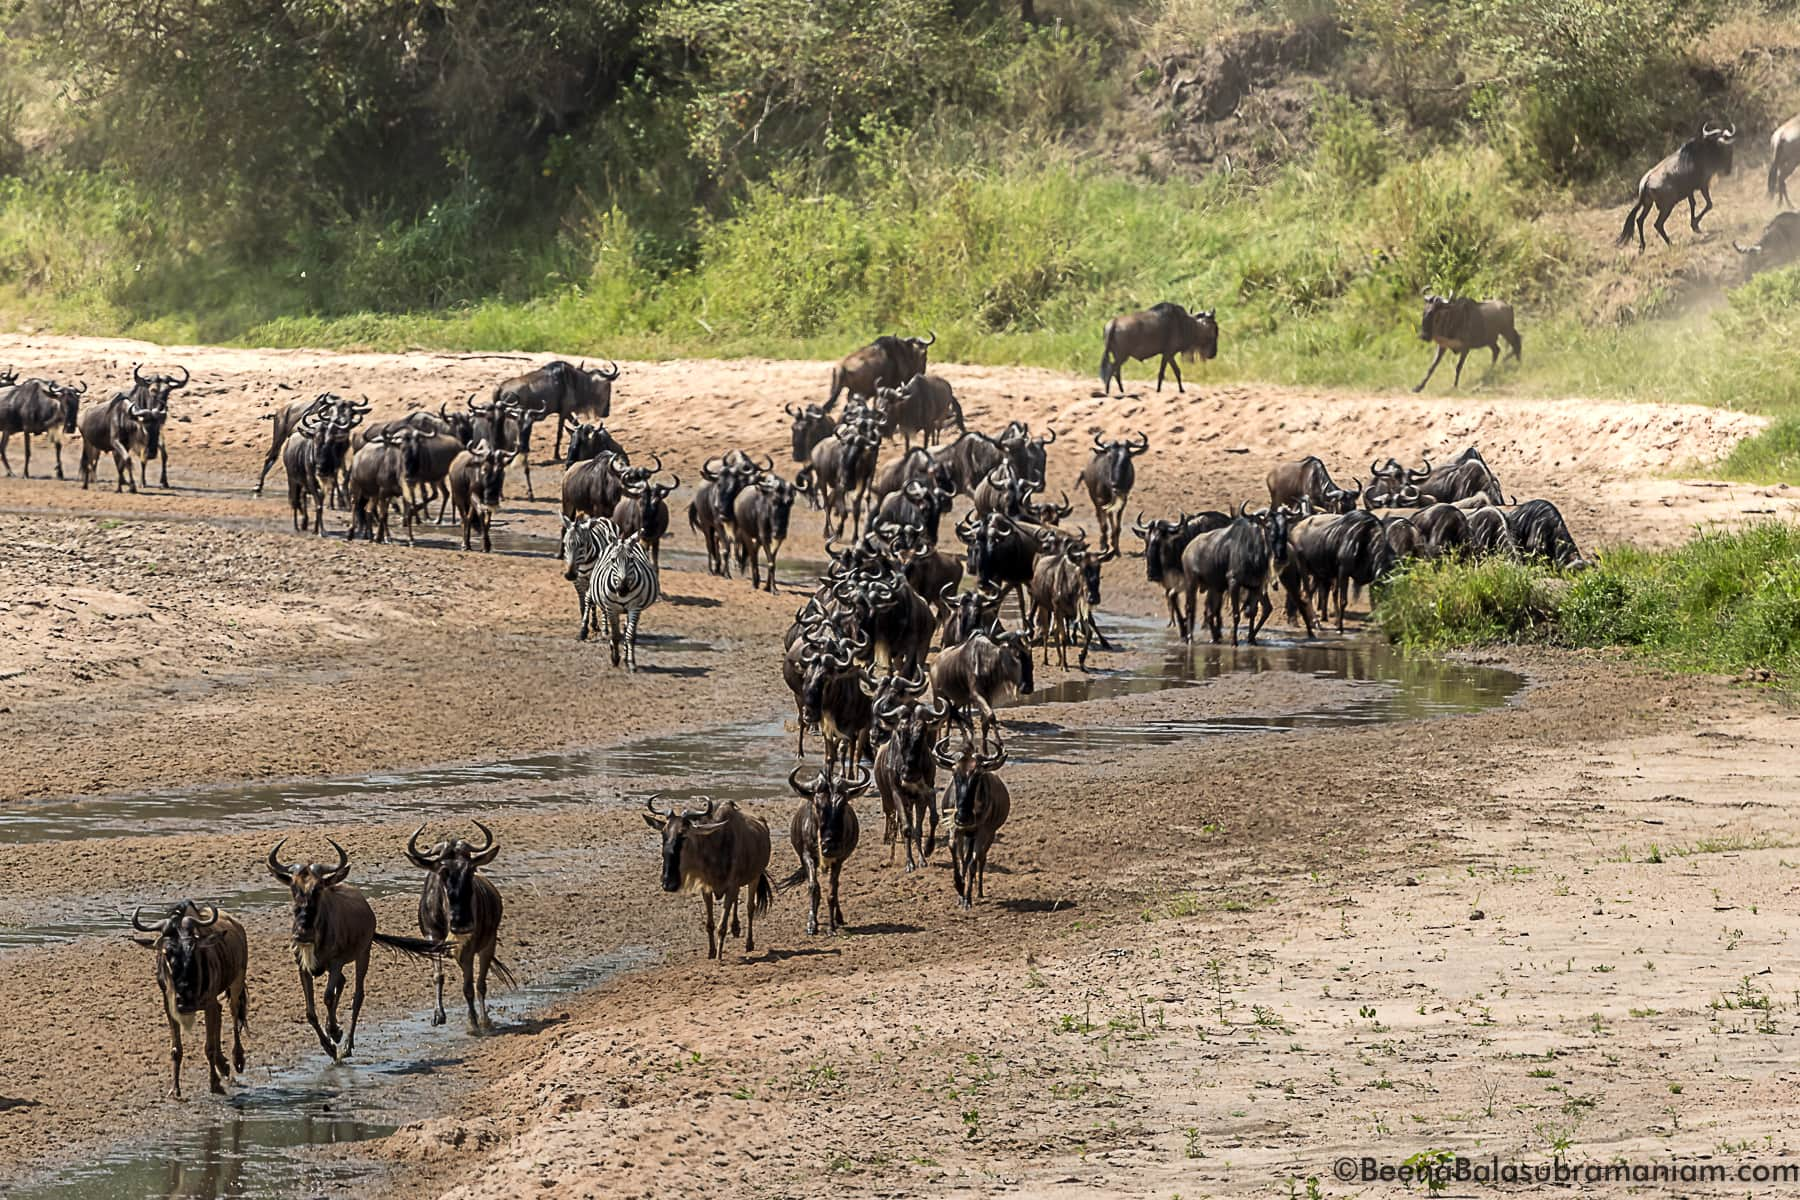 The herds in the sand river when there is no water